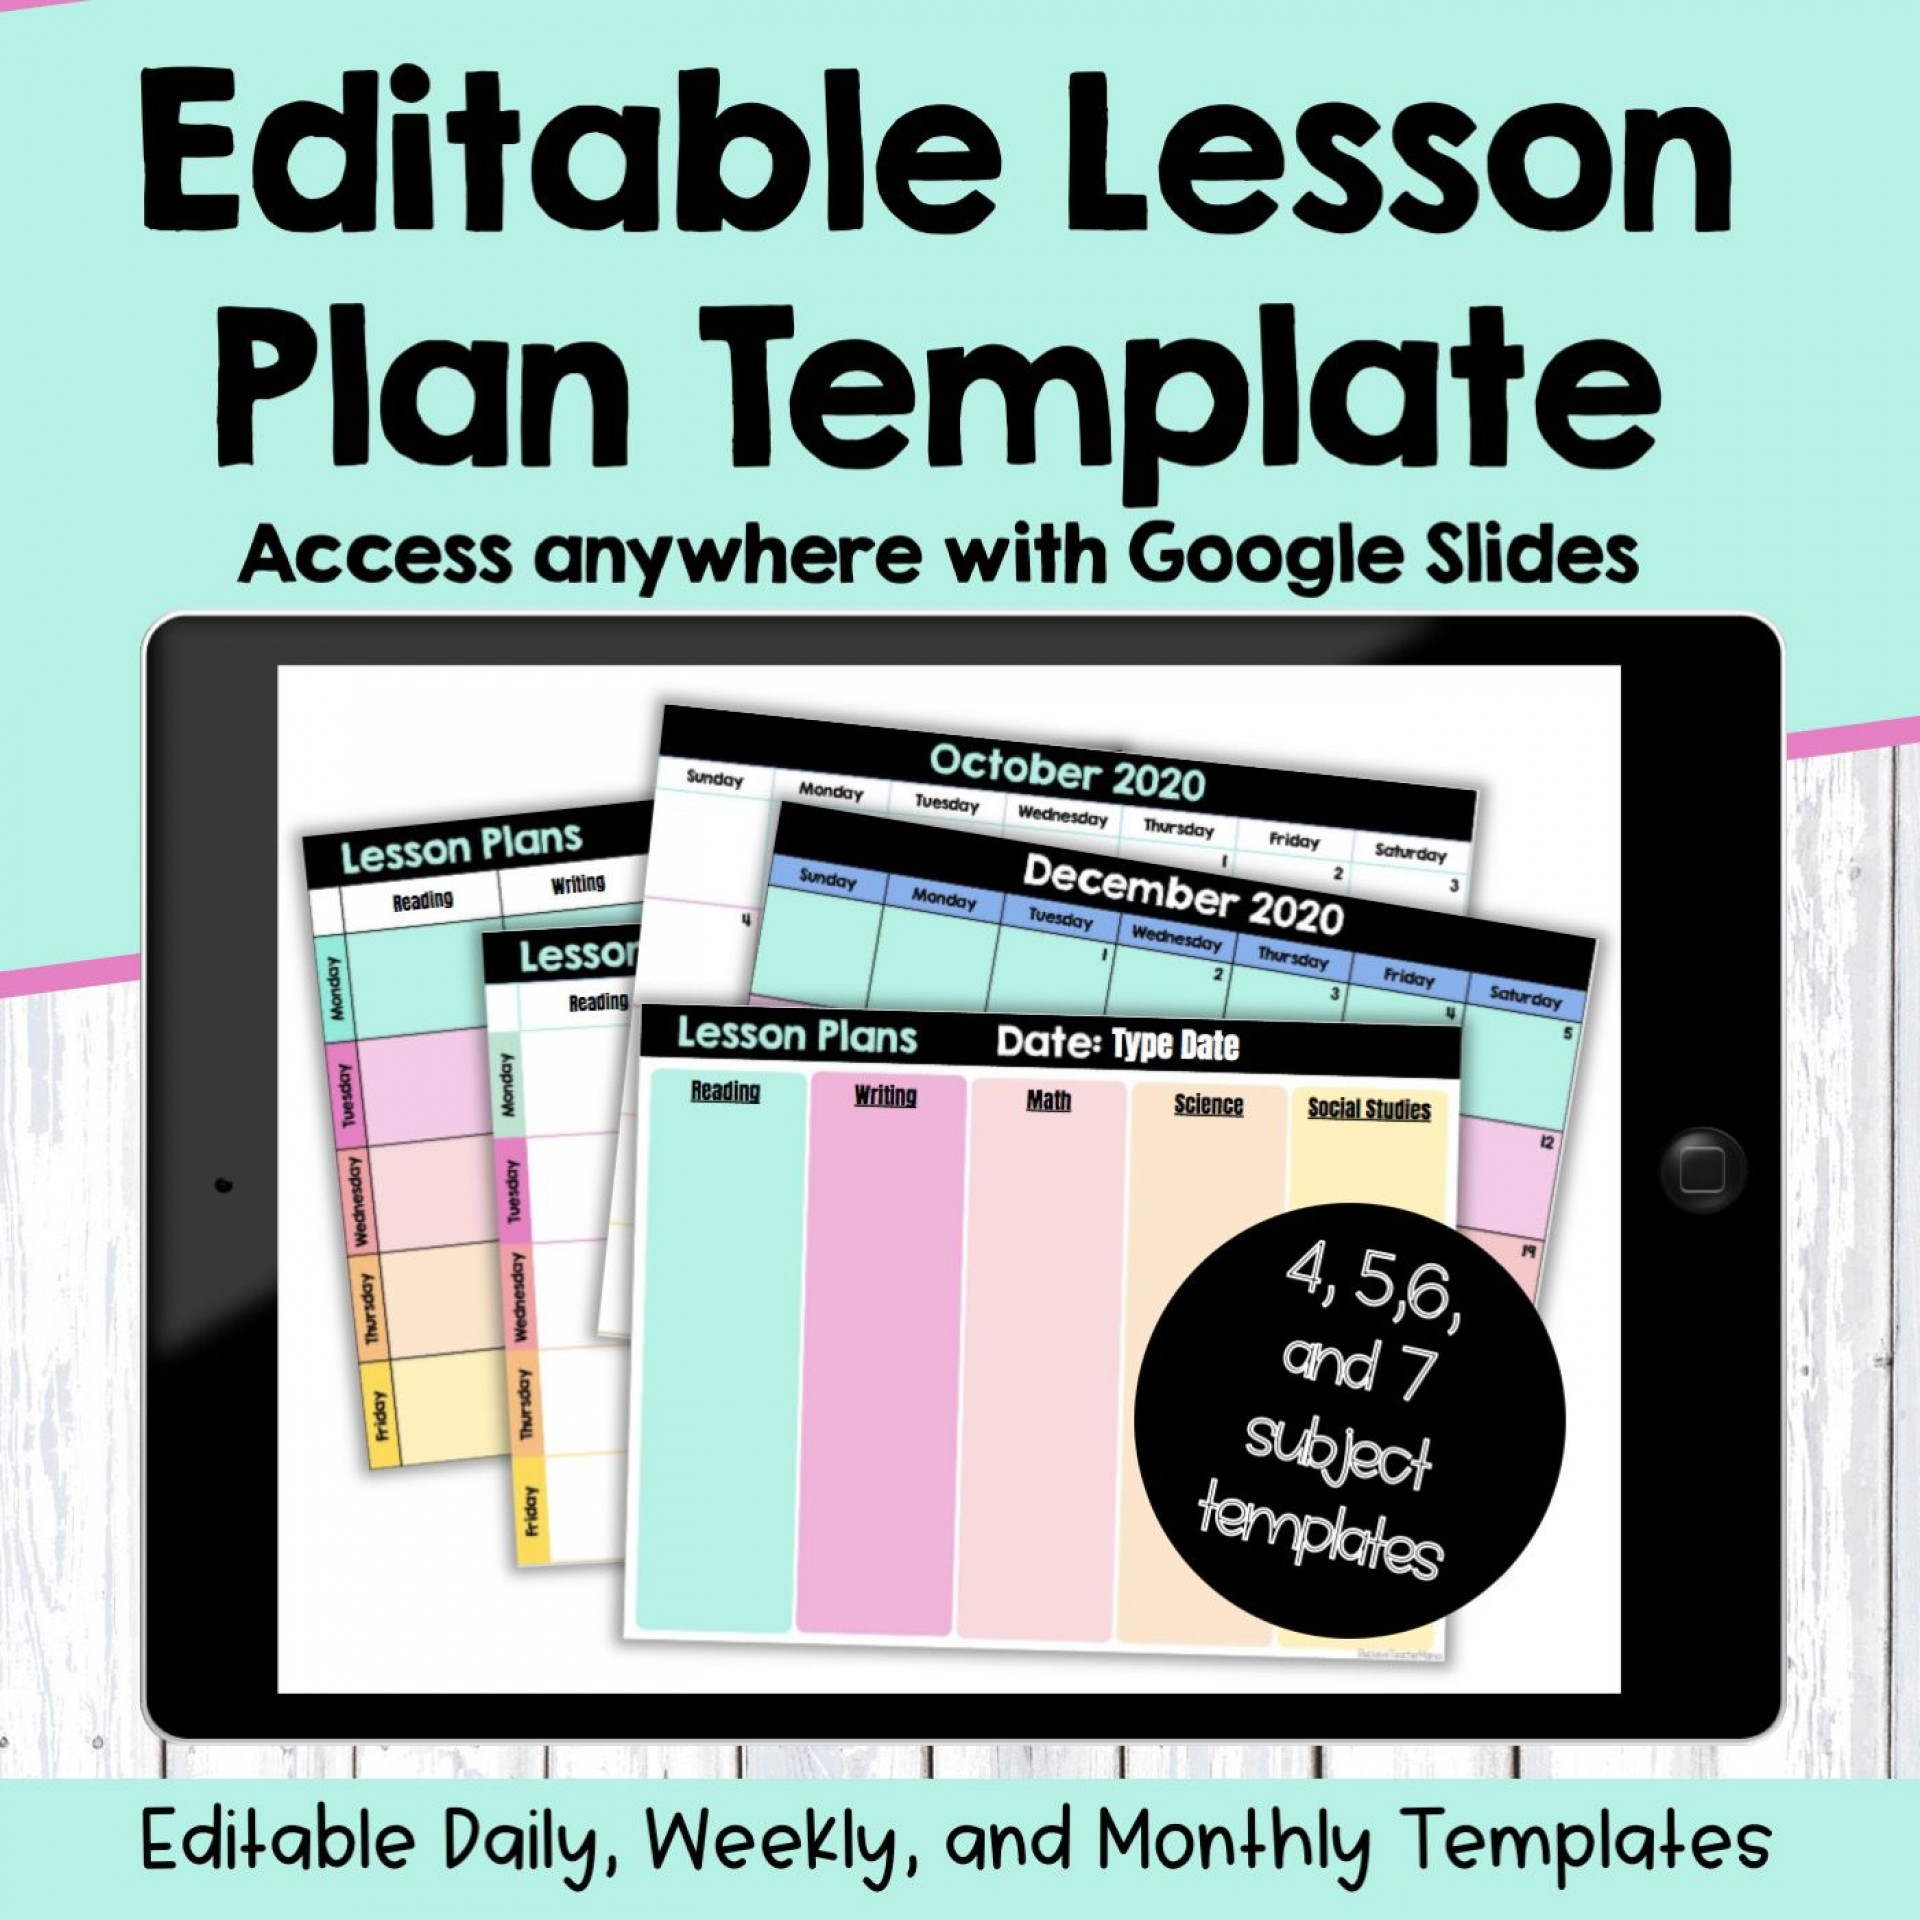 007 Stupendou Editable Lesson Plan Template Middle School Example 1920